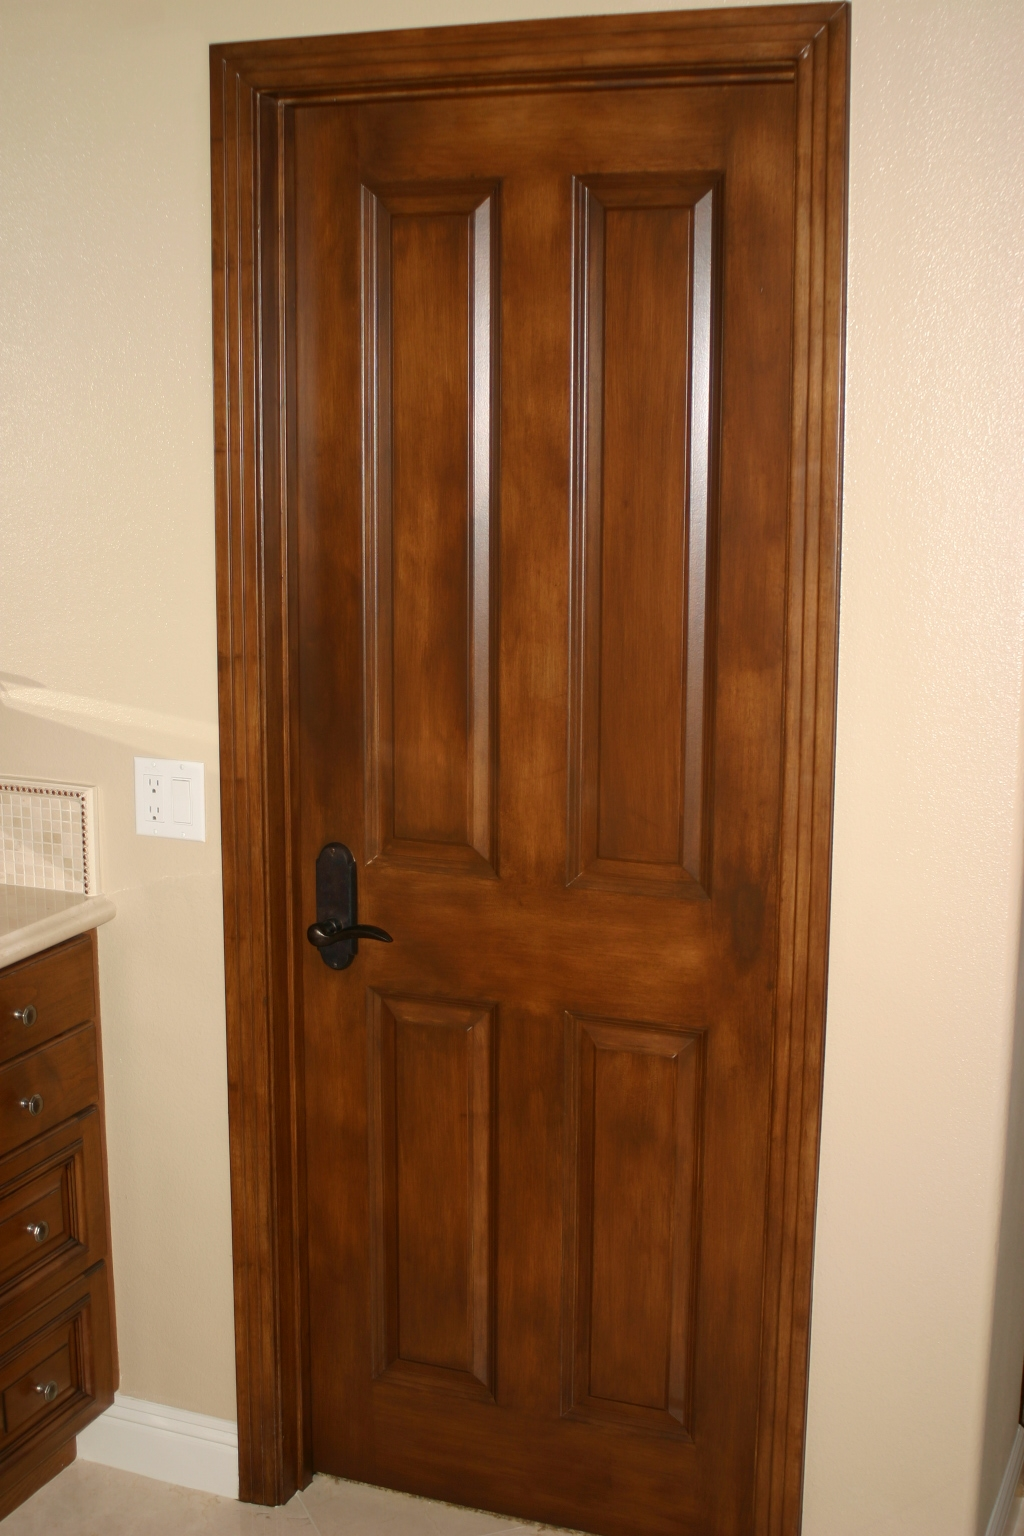 Doors standard interior door before same door fauxed to beautiful wood tones planetlyrics Image collections